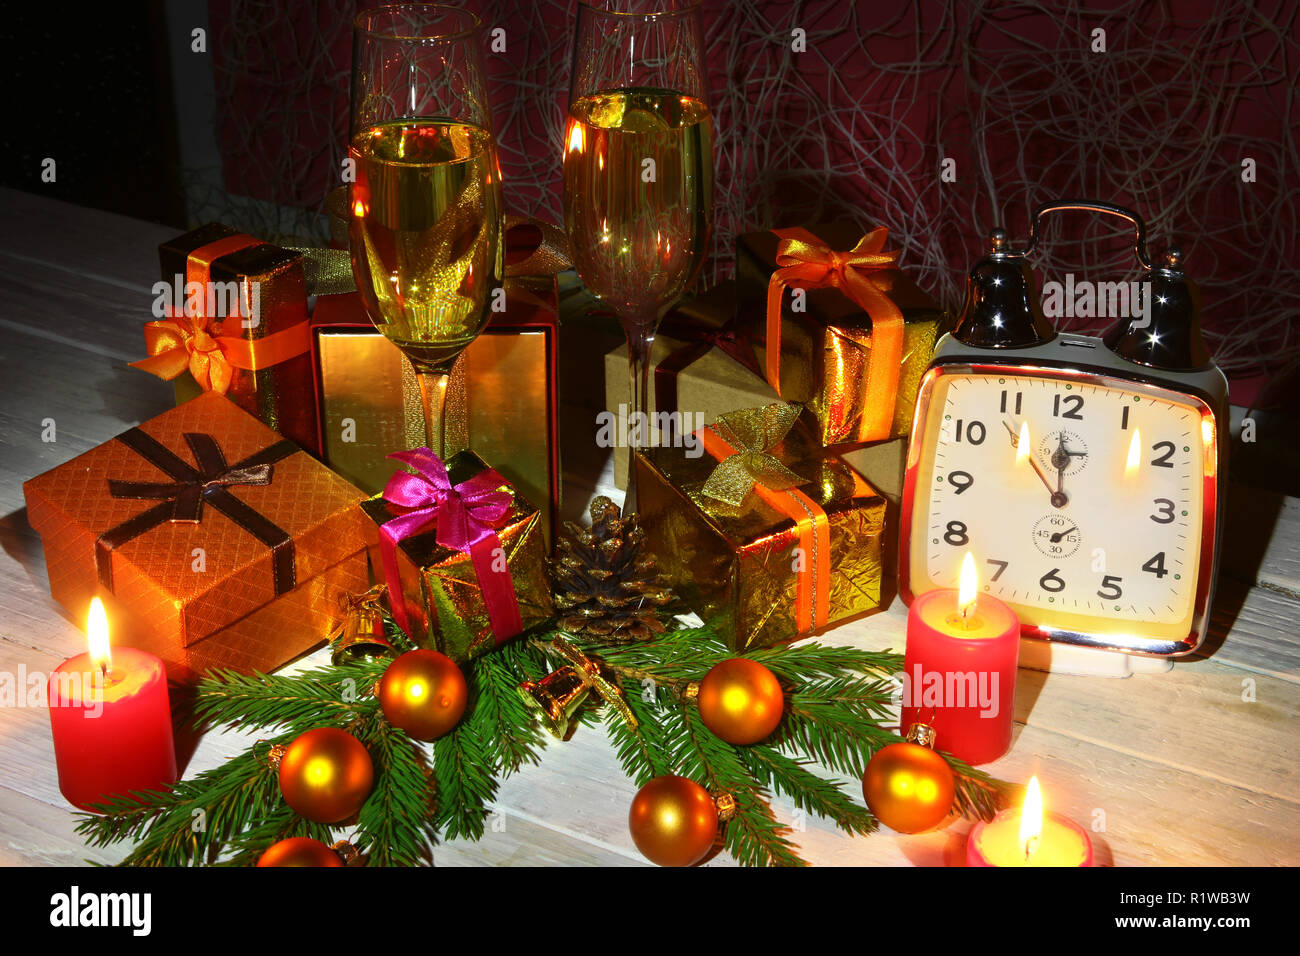 new year or christmas decorations with glasses wine gift boxes candles and balls